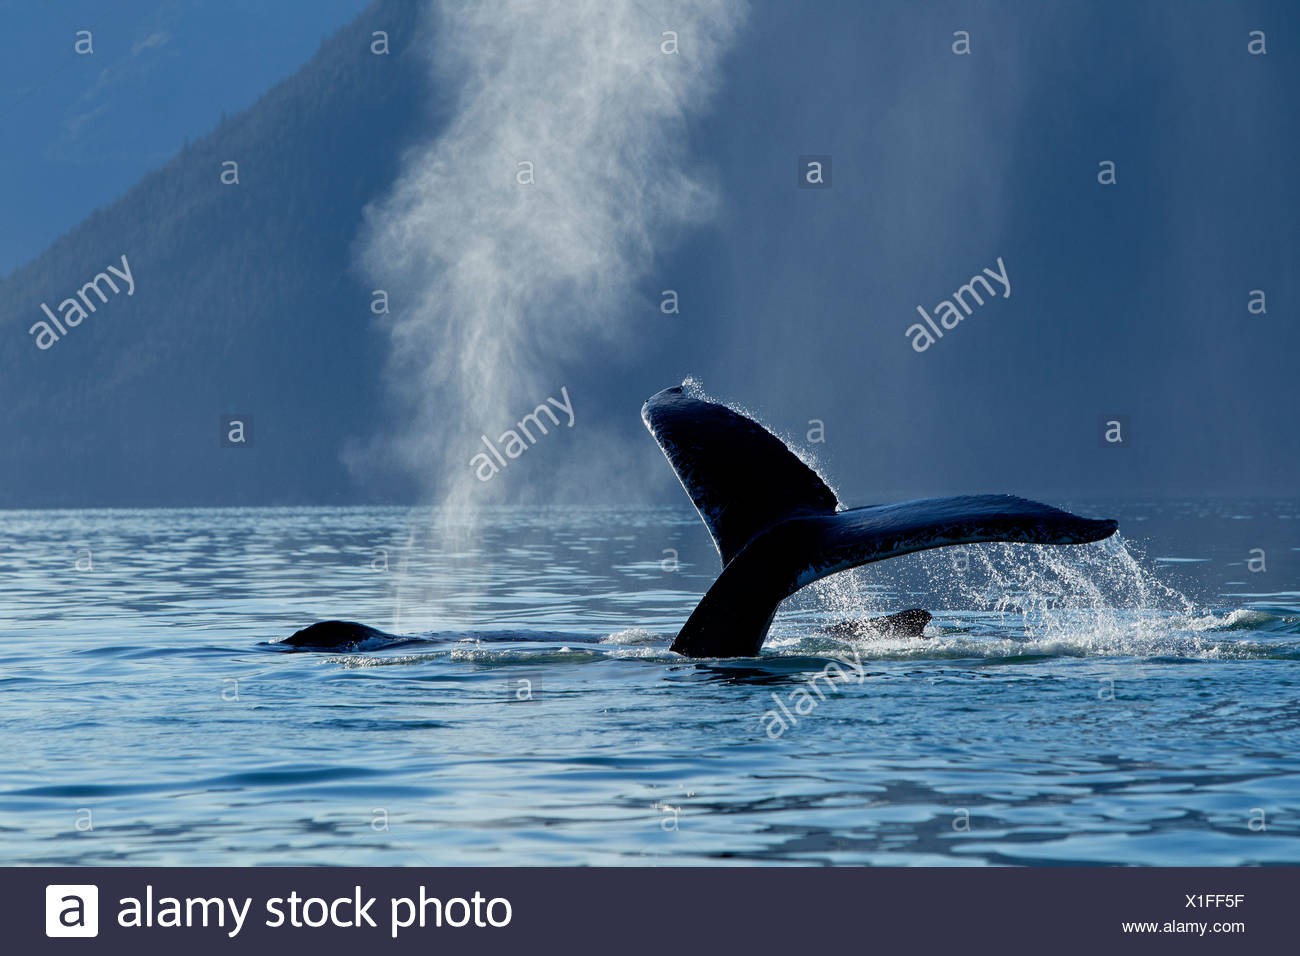 A Humpback Whale lifts its flukes as it dives down into Stephens Passage, Admiralty Island, Inside Passage, Alaska, Autumn - Stock Image